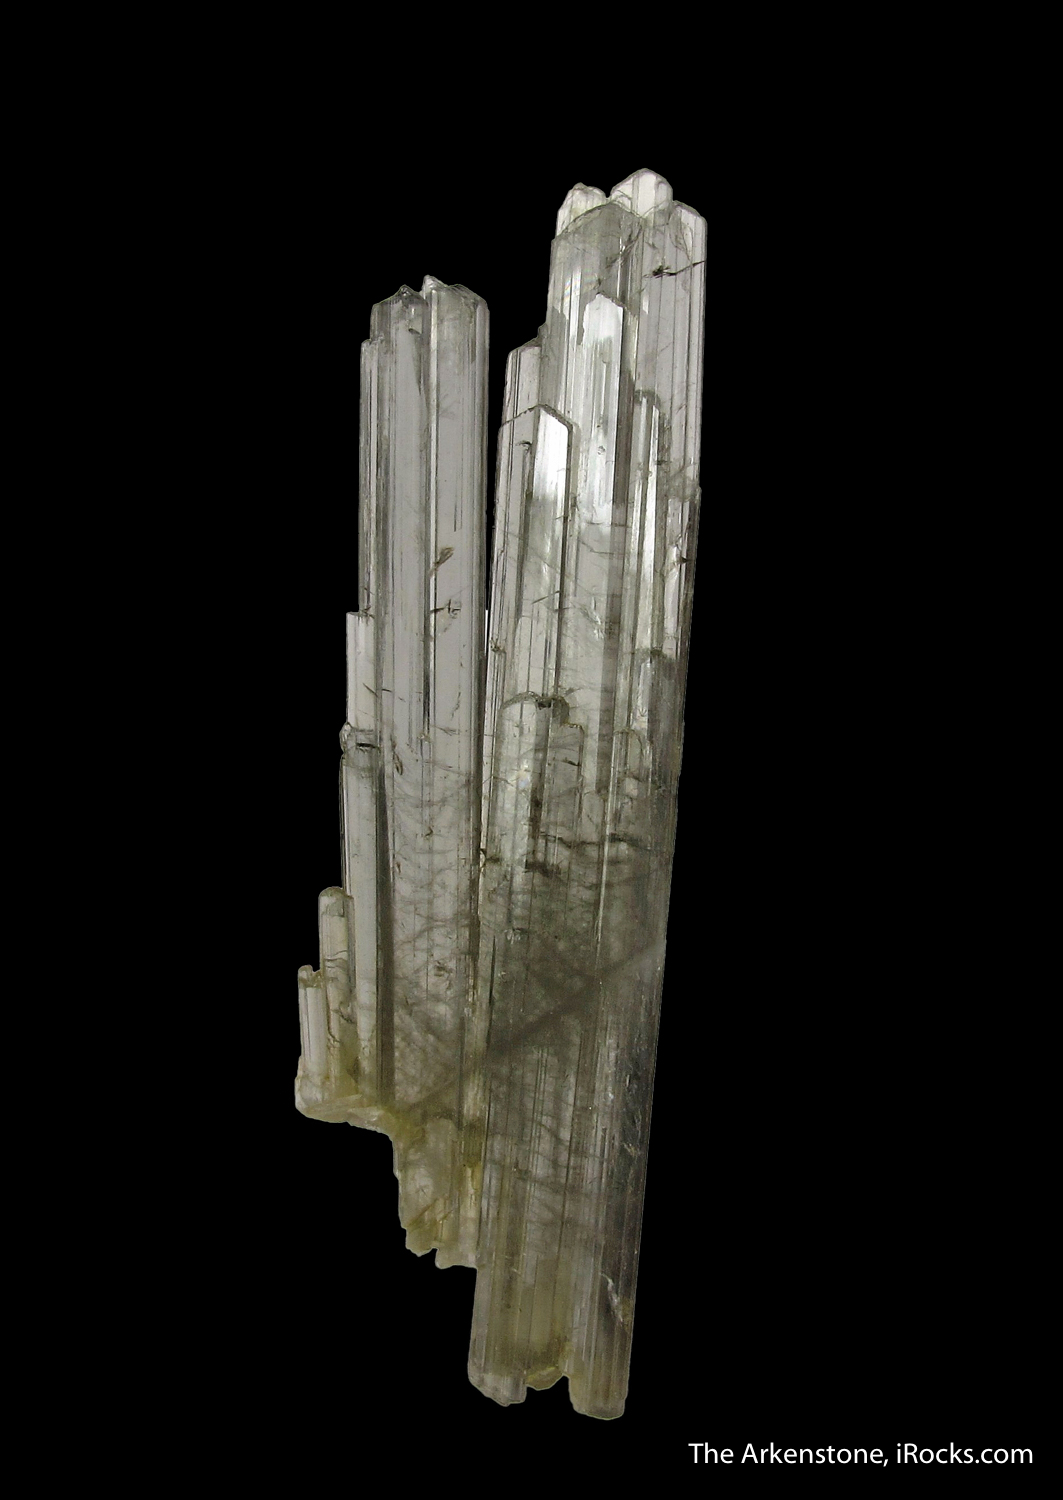 These Zoisite crystals Alchuri delicate attractive The blades silvery